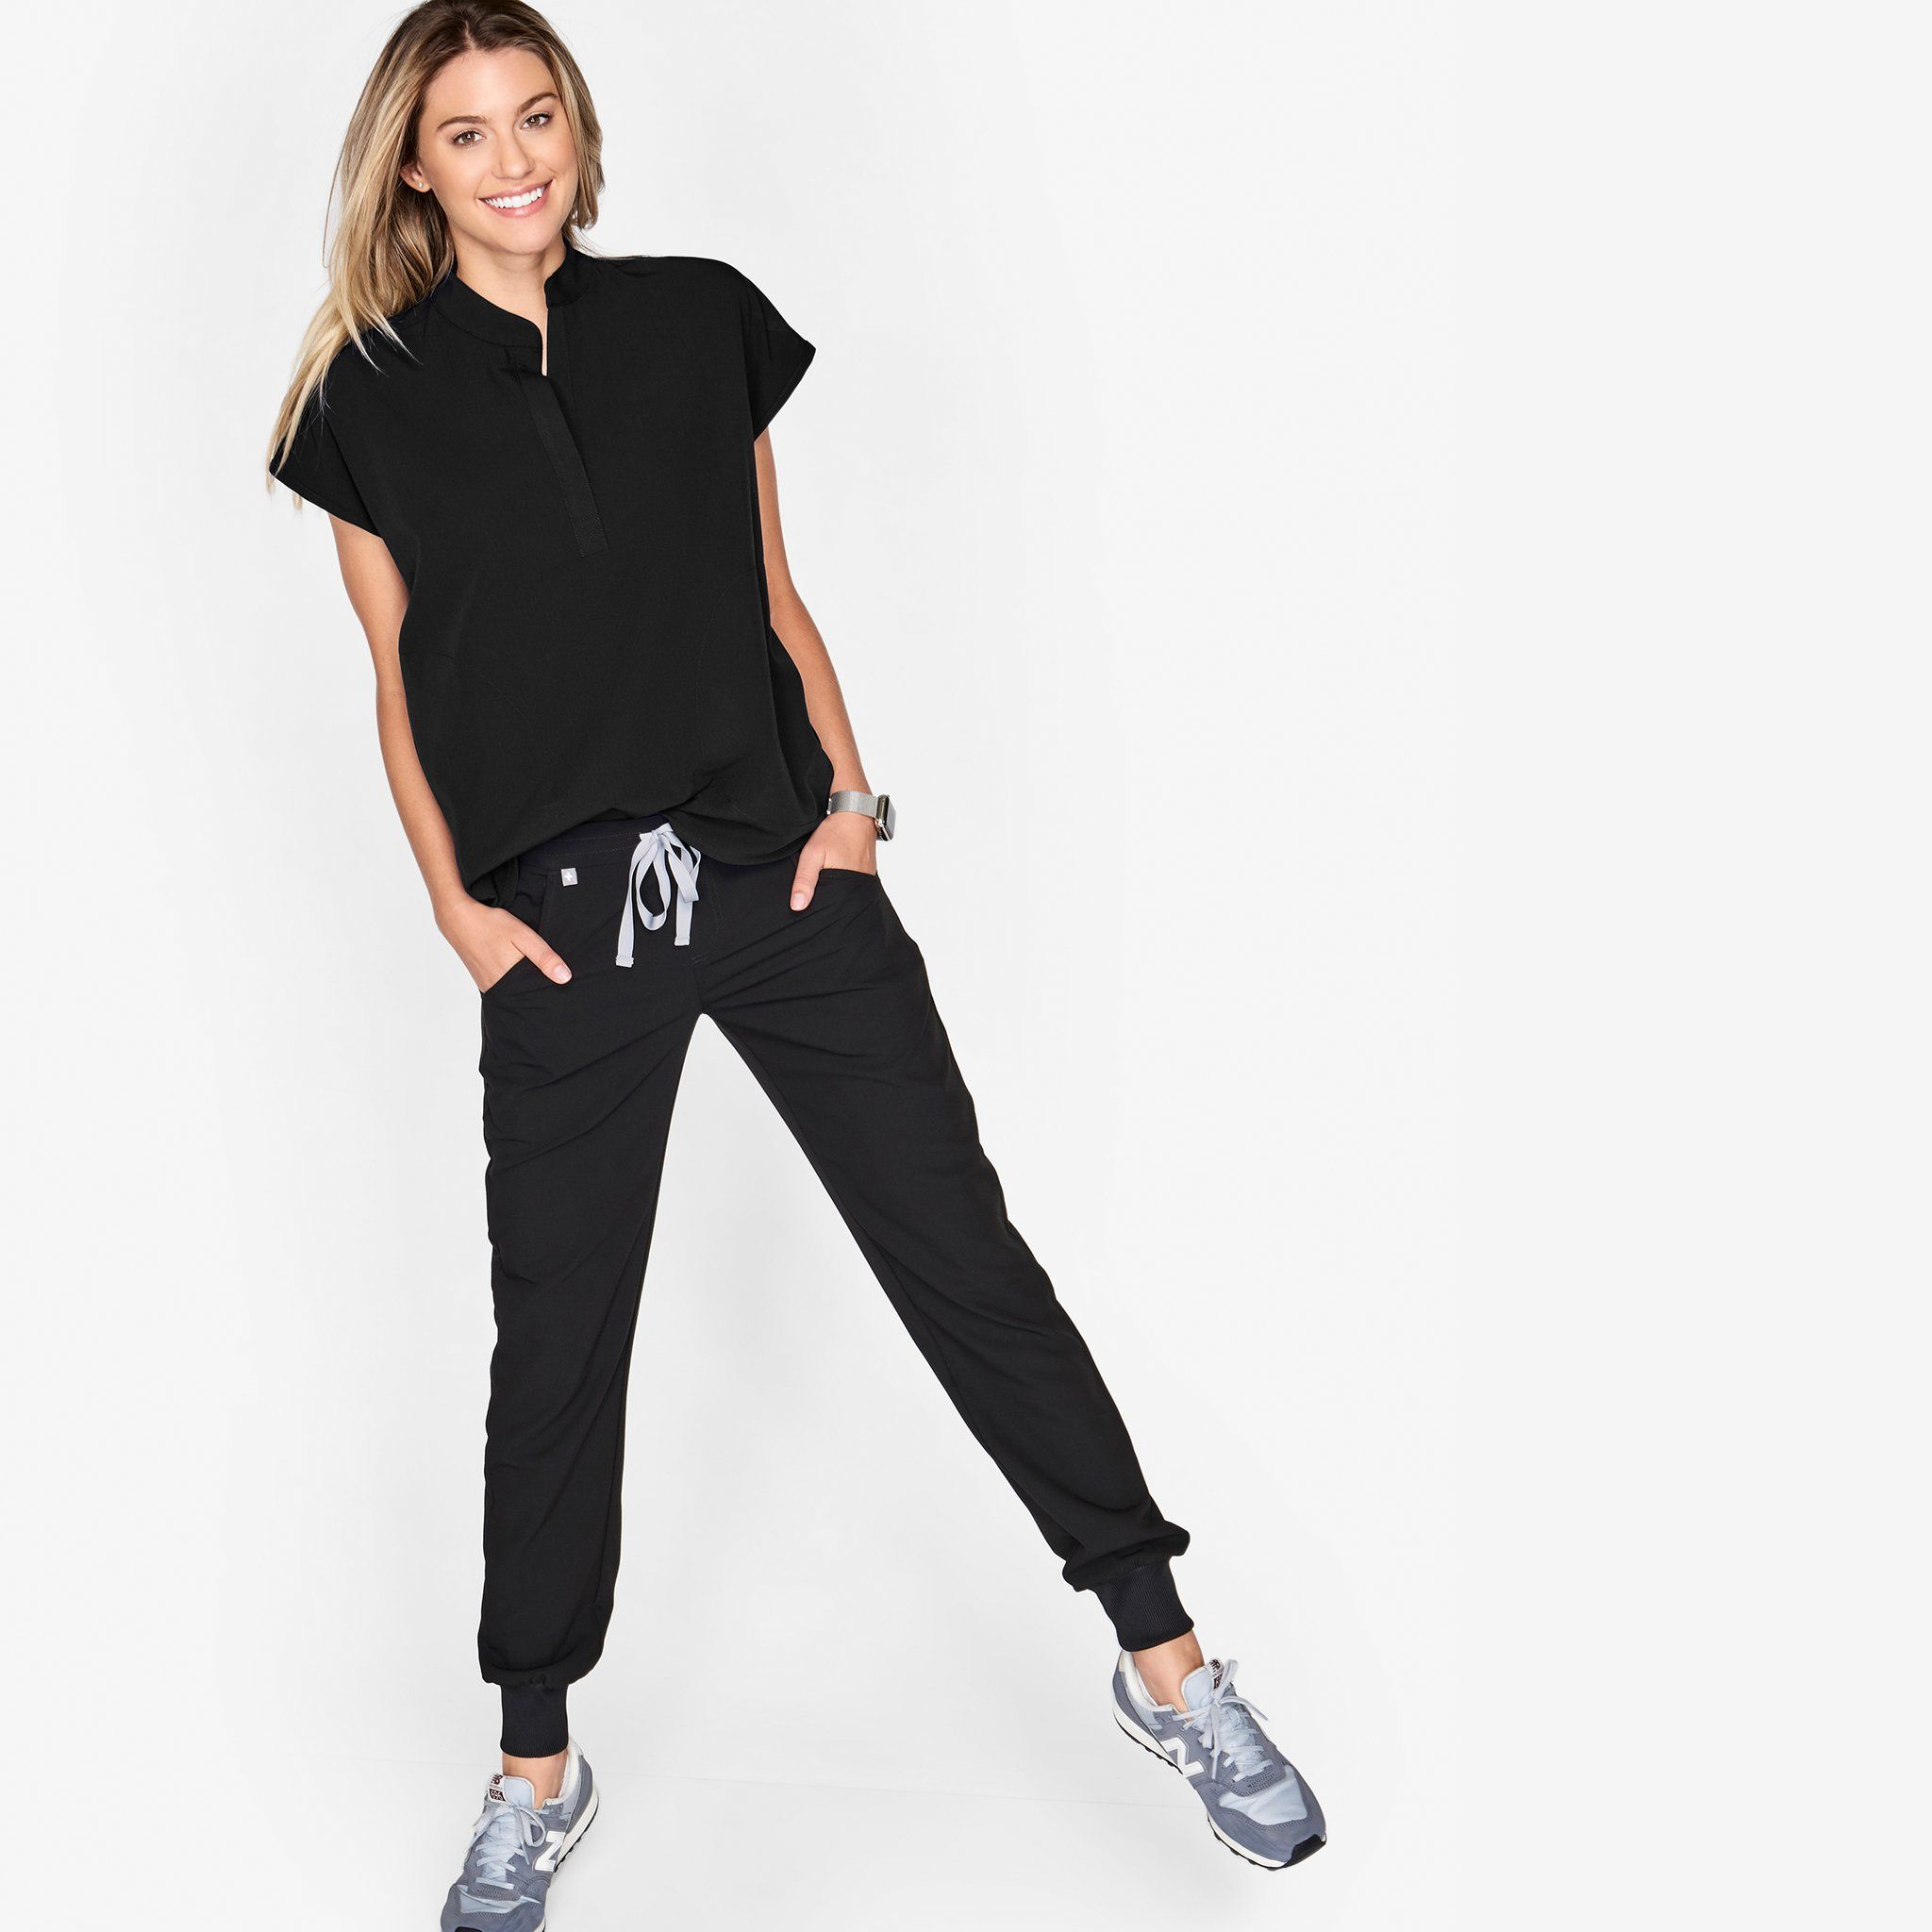 d3ad1283be4 The Zamora jogger scrub pant — a FIGS favorite is back for a limited time.